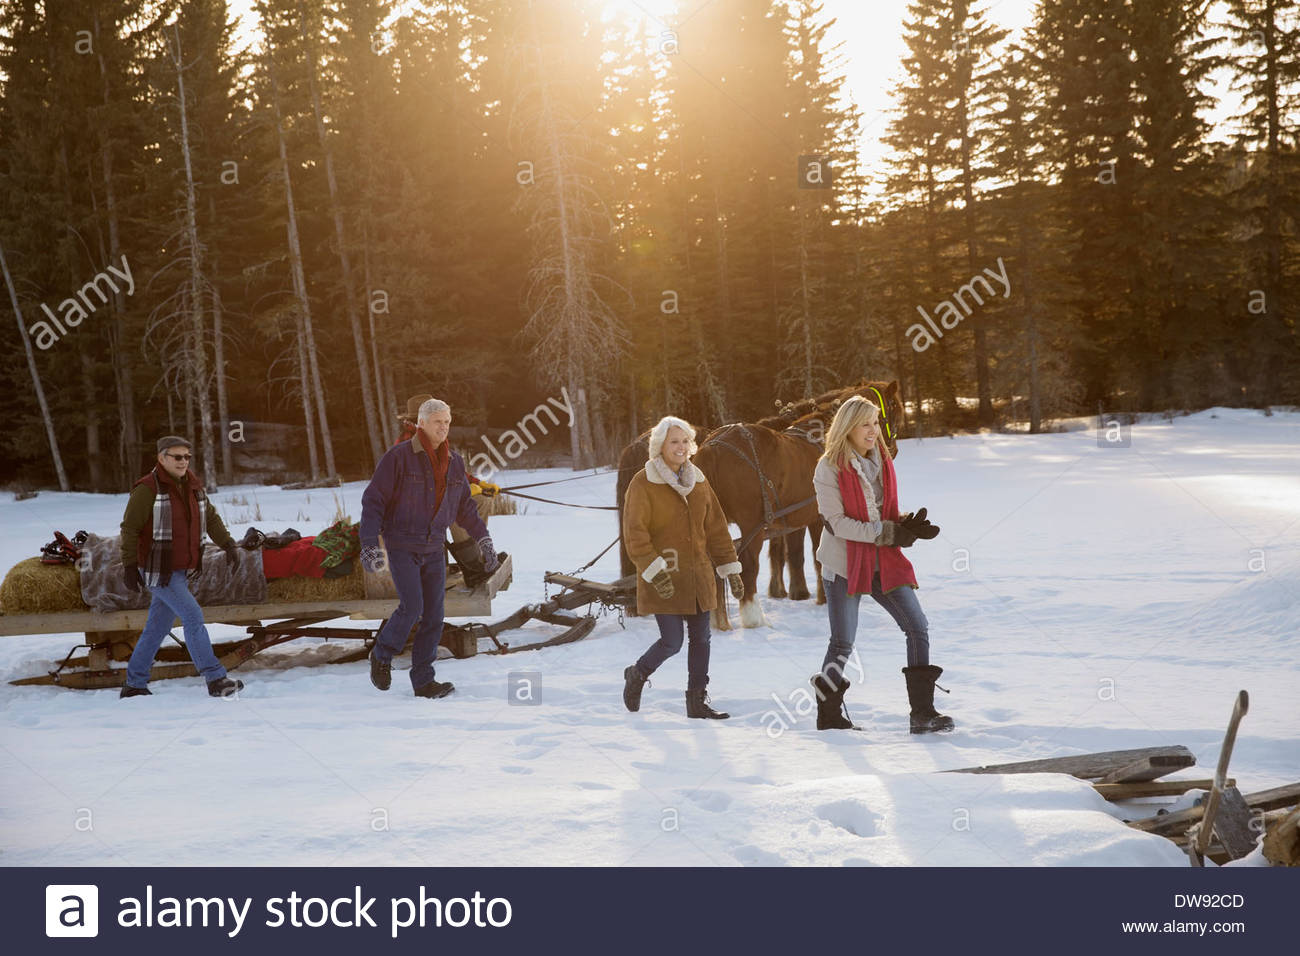 Friends walking by horse-drawn sleigh in snow Stock Photo